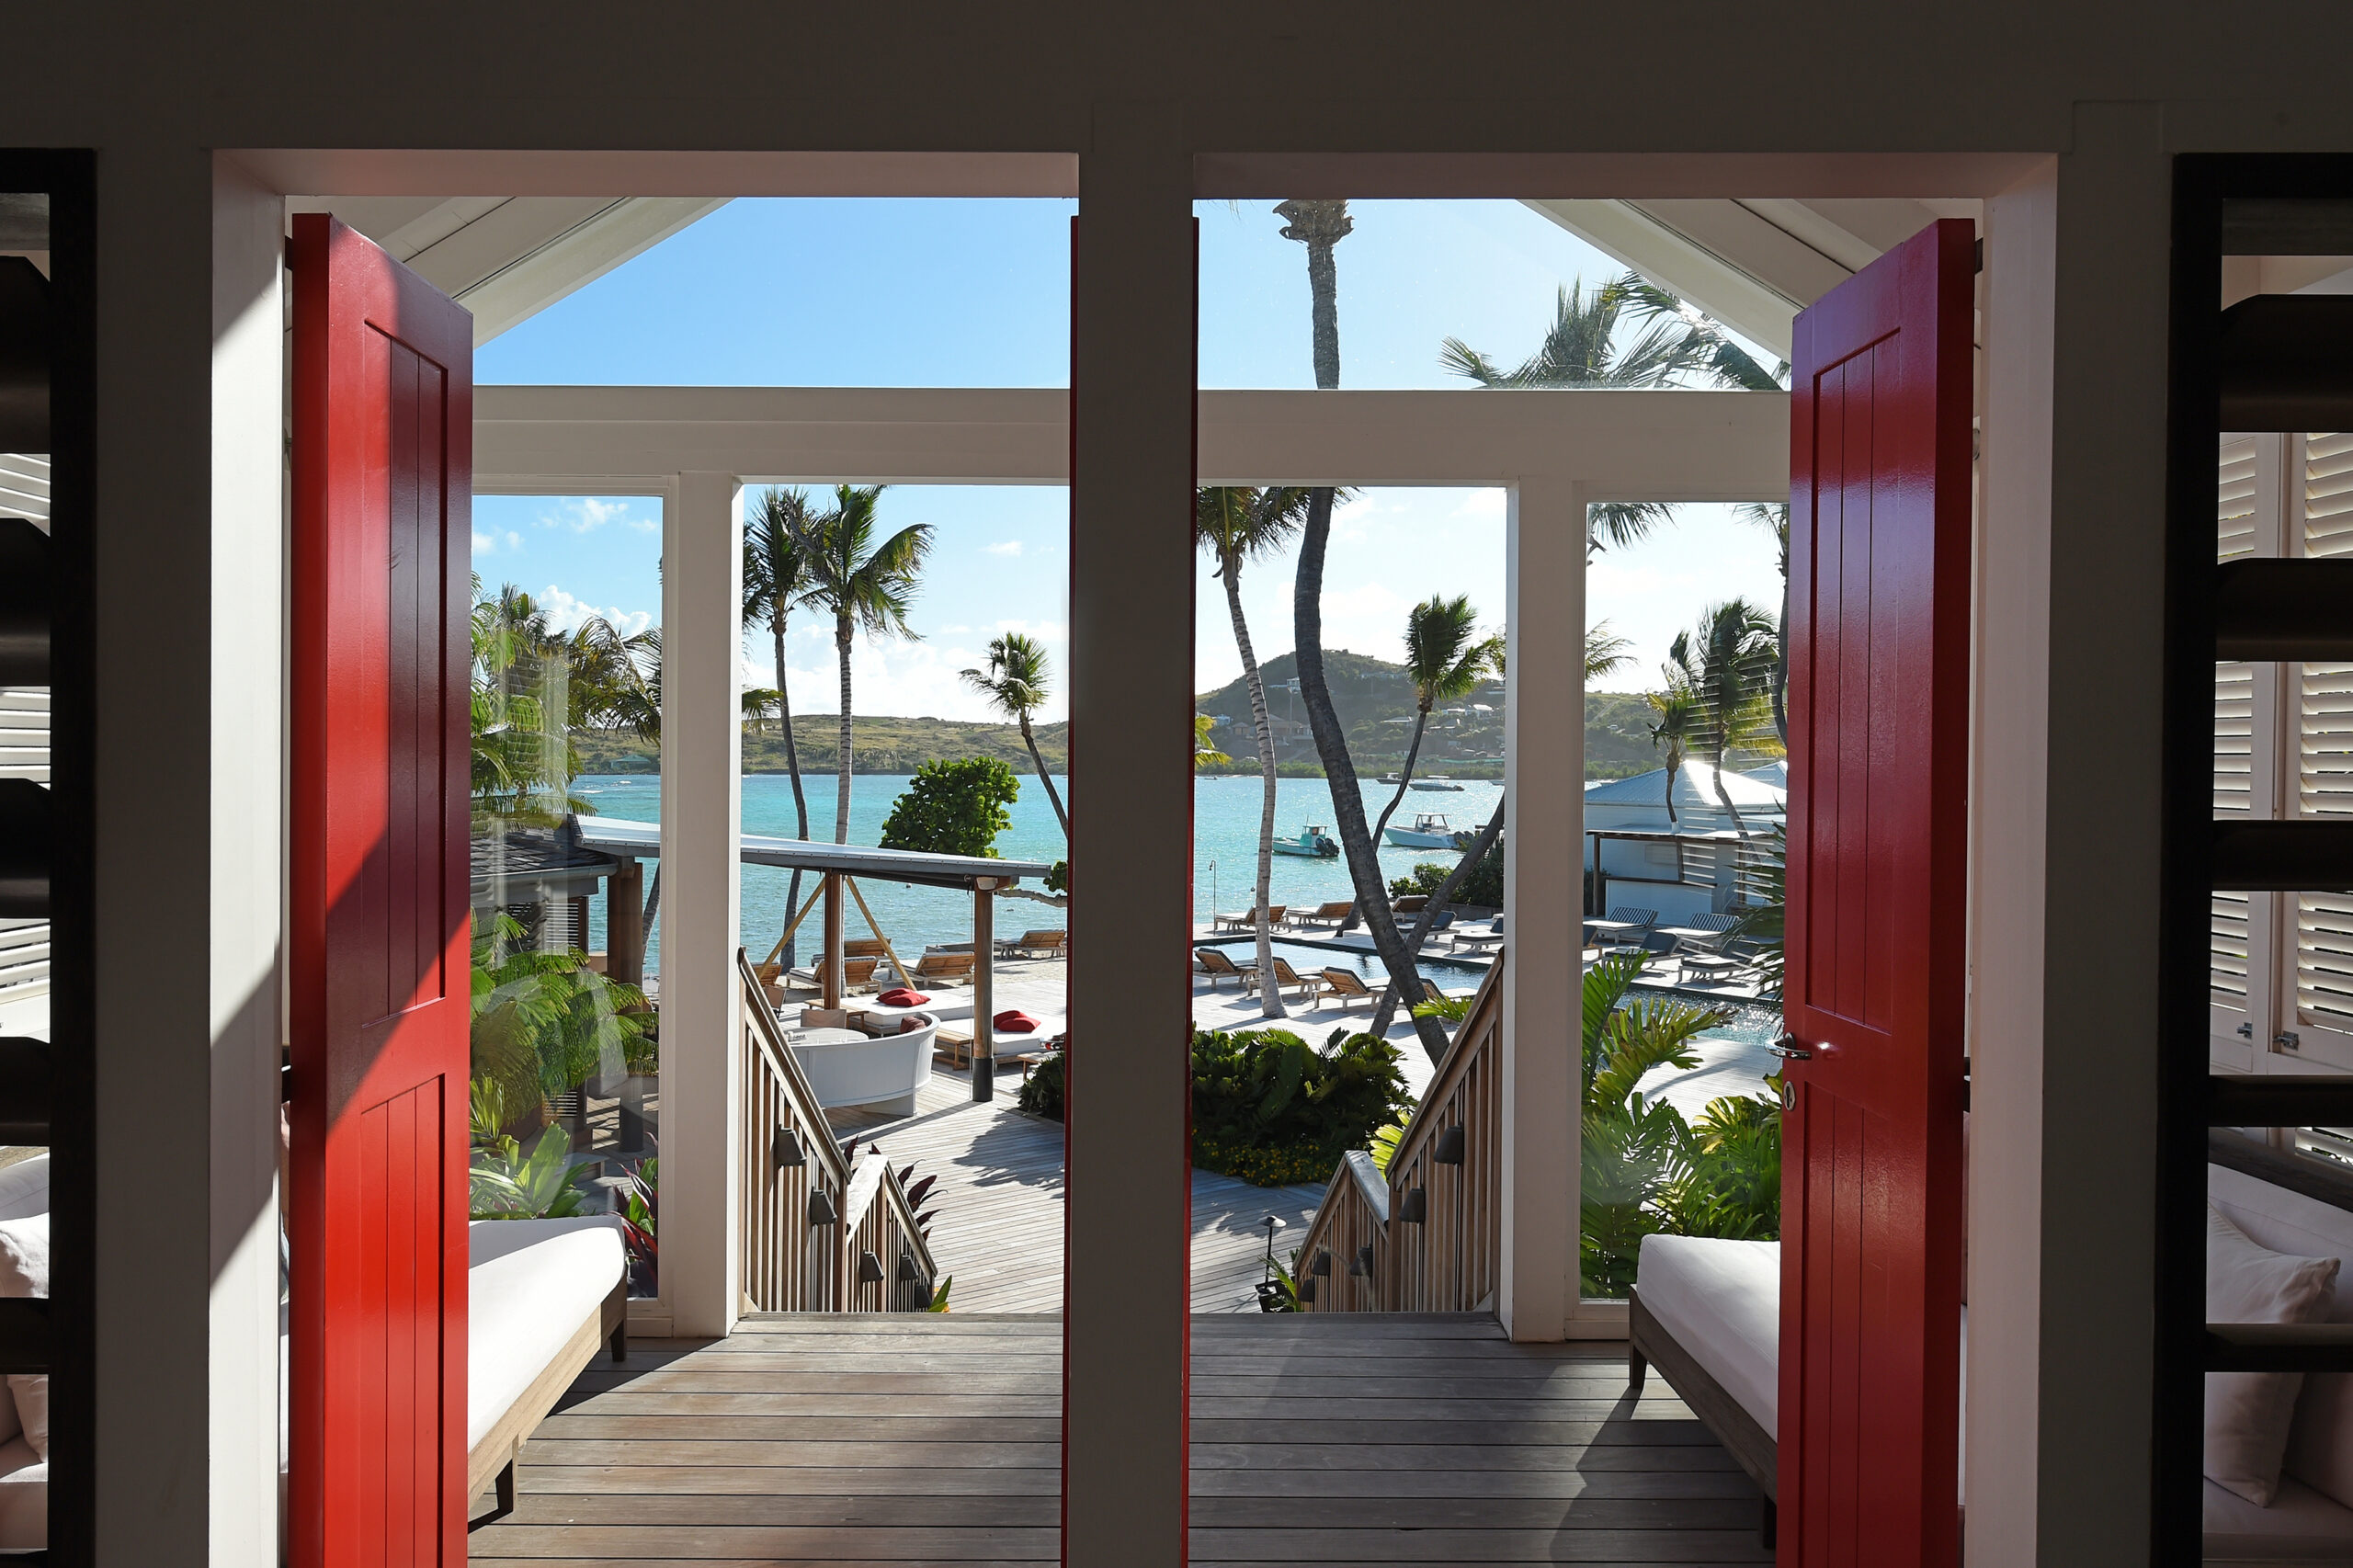 Caribbean architecture with red doors opening onto the ocean